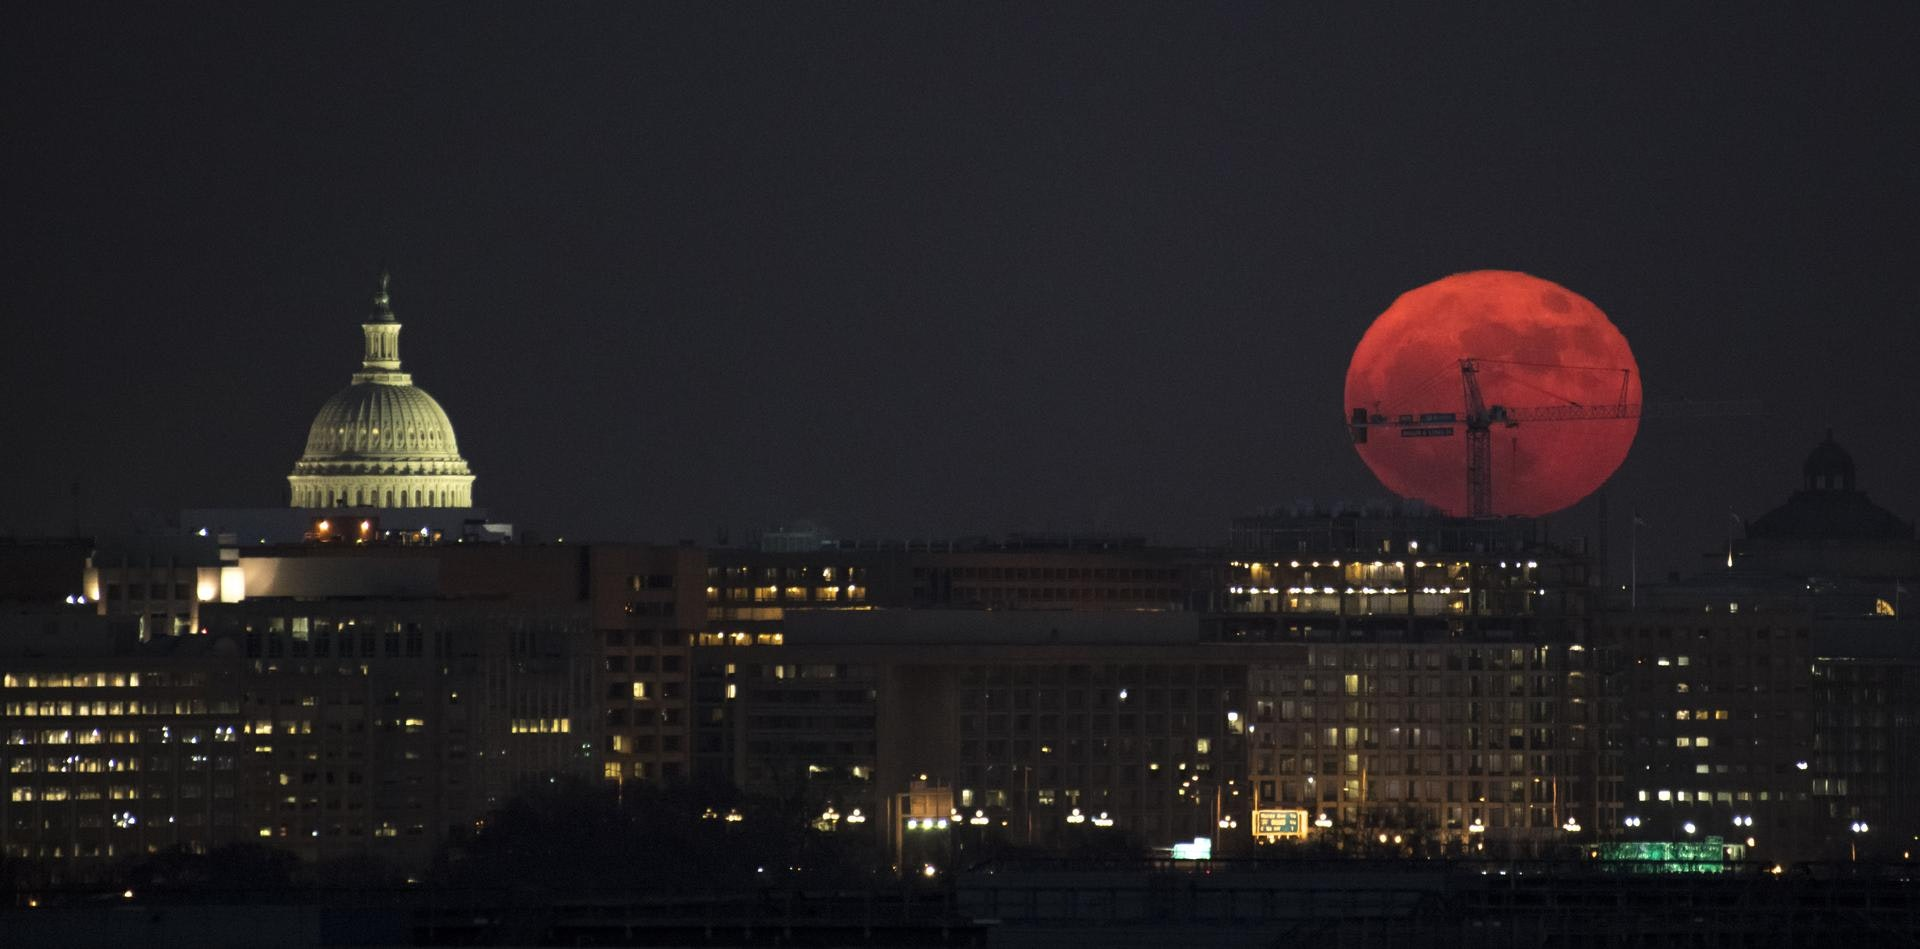 The supermoon rises over the U.S. Capitol on December 3, 2017.